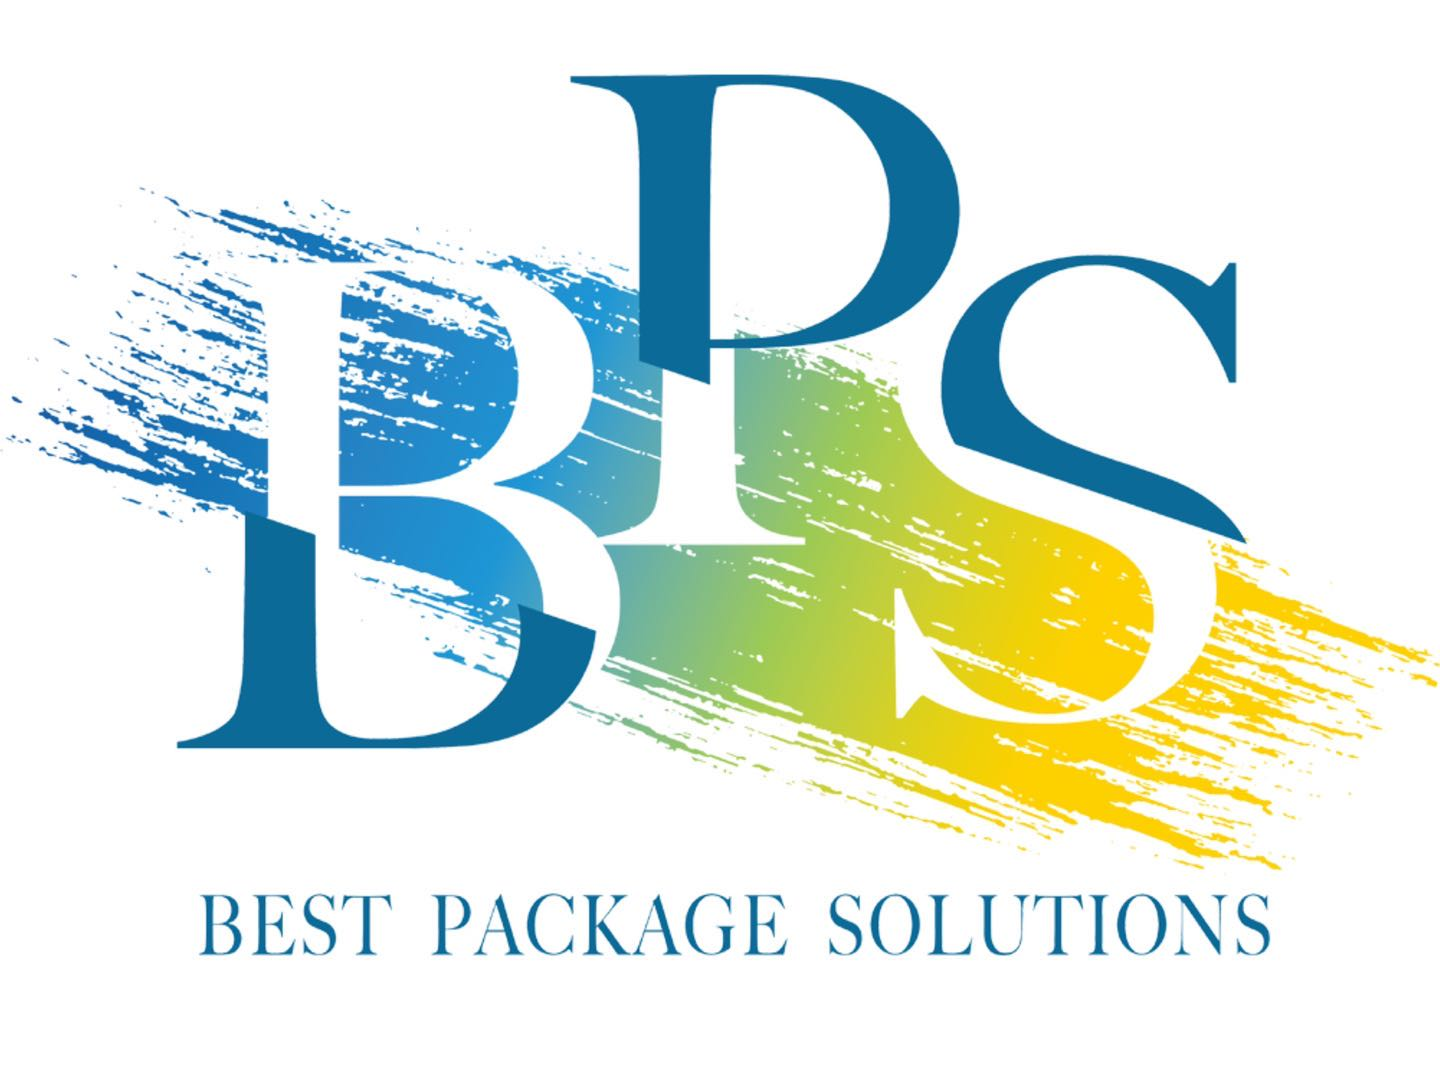 Best Package Solutions